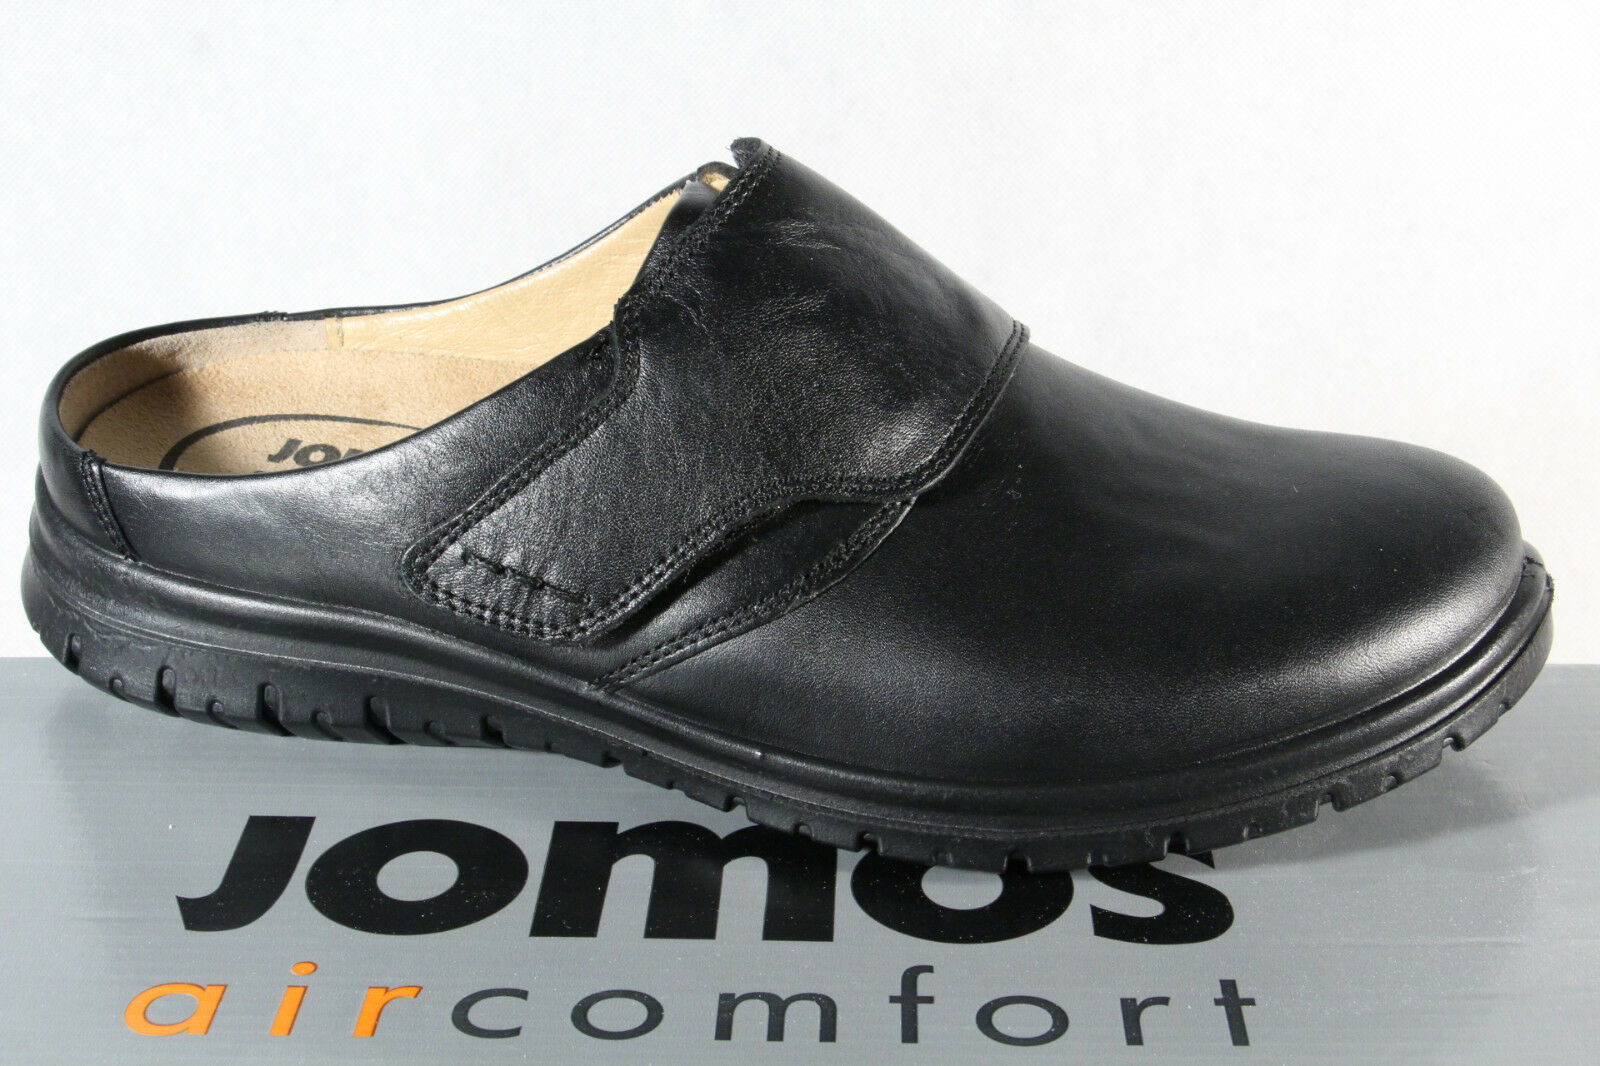 Jomos Women Clogs Sabot Mules Slippers Leather Black Width H New